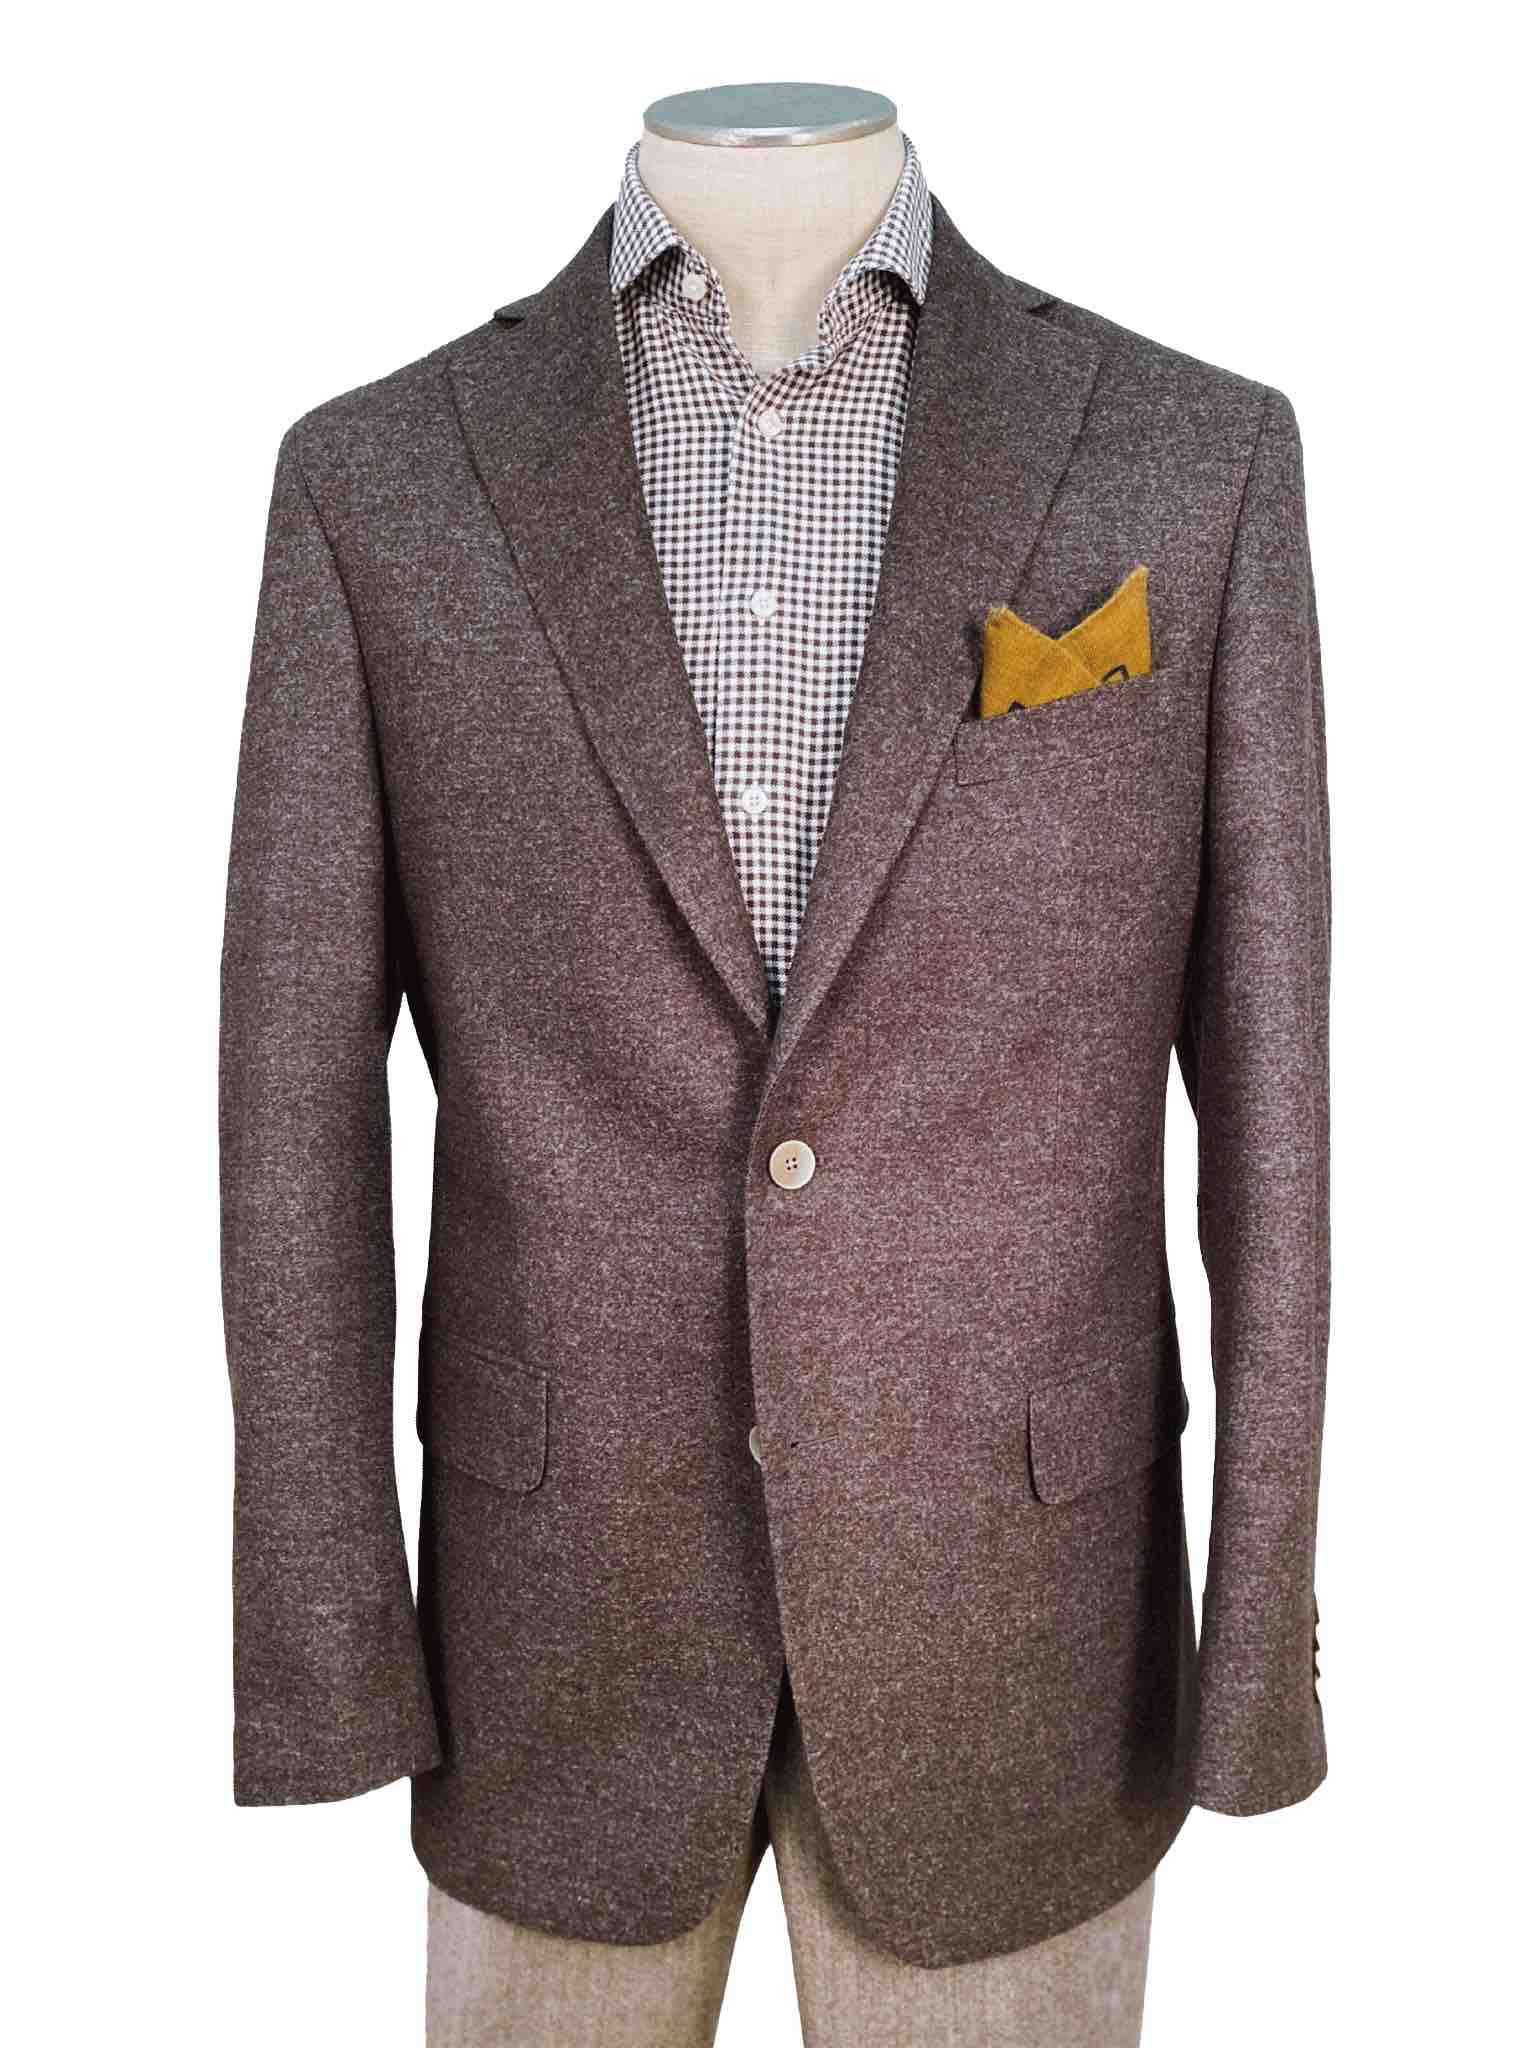 Men's Sport Coat Modern Cut - BROWN - 70% WO 110'S/30% AIRWOOL